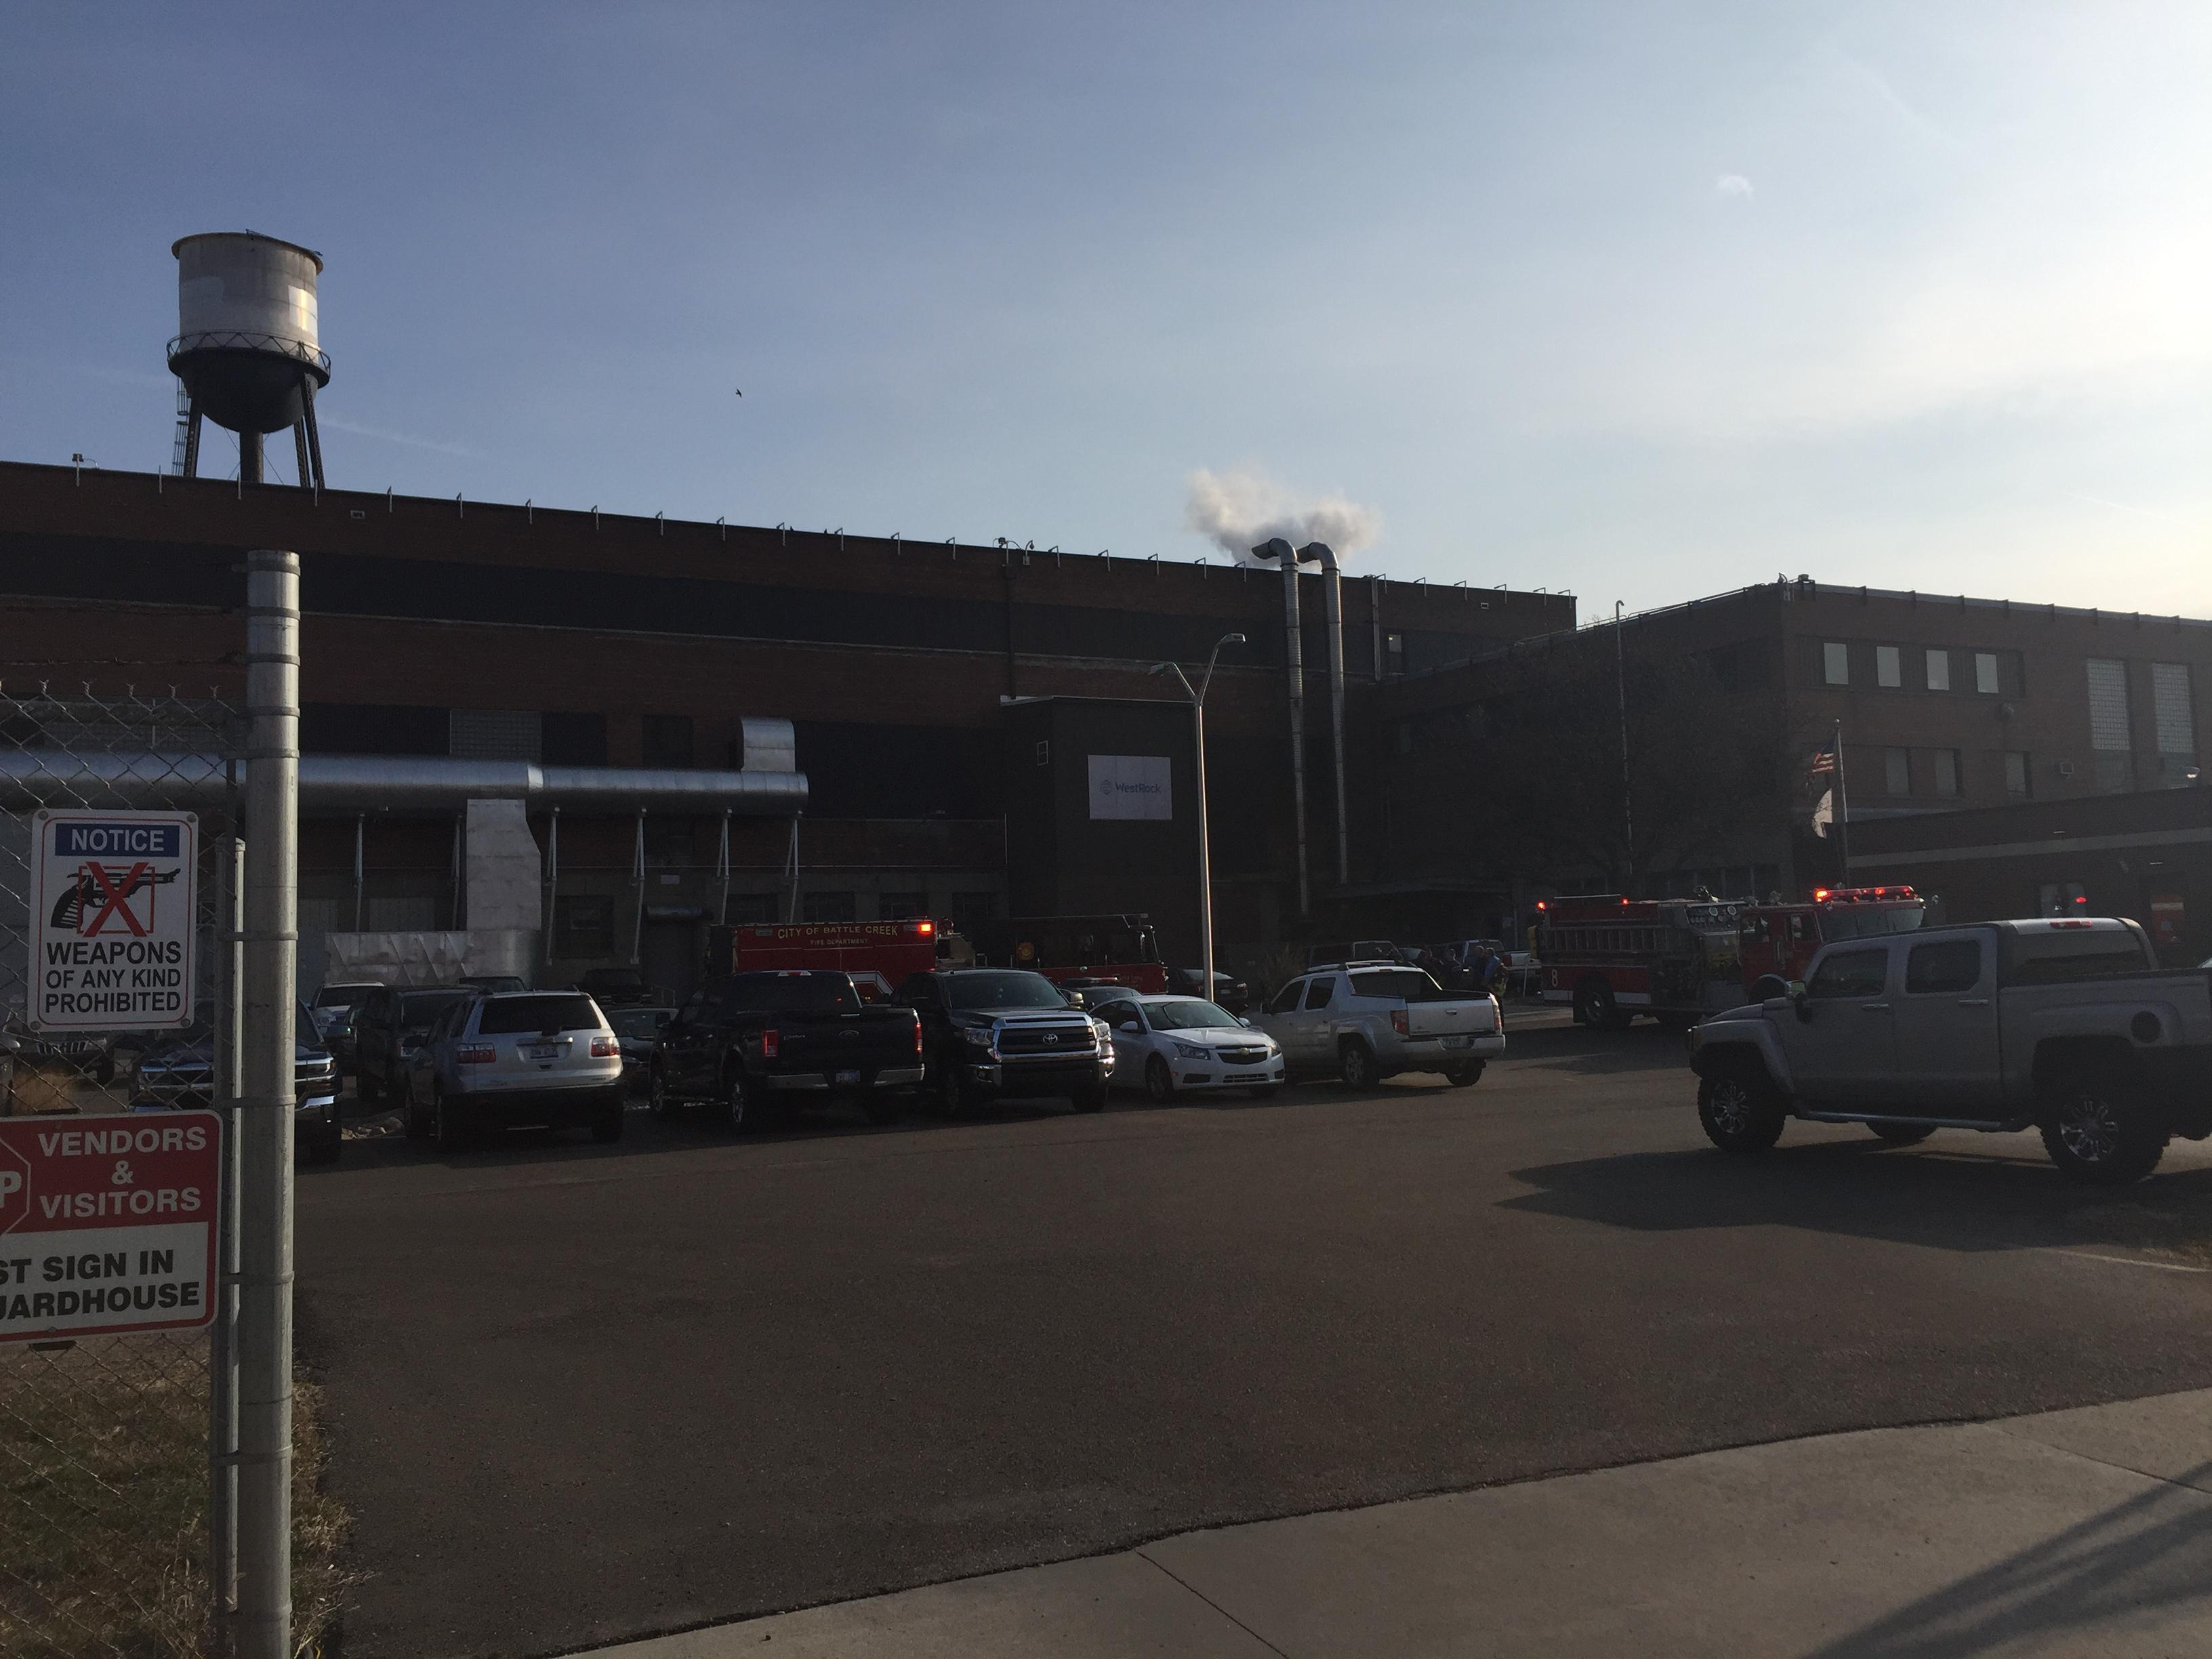 A man in his 30s was injured Wednesday, April 11, 2018, at the WestRock manufacturing plant in Battle Creek. (WWMT)